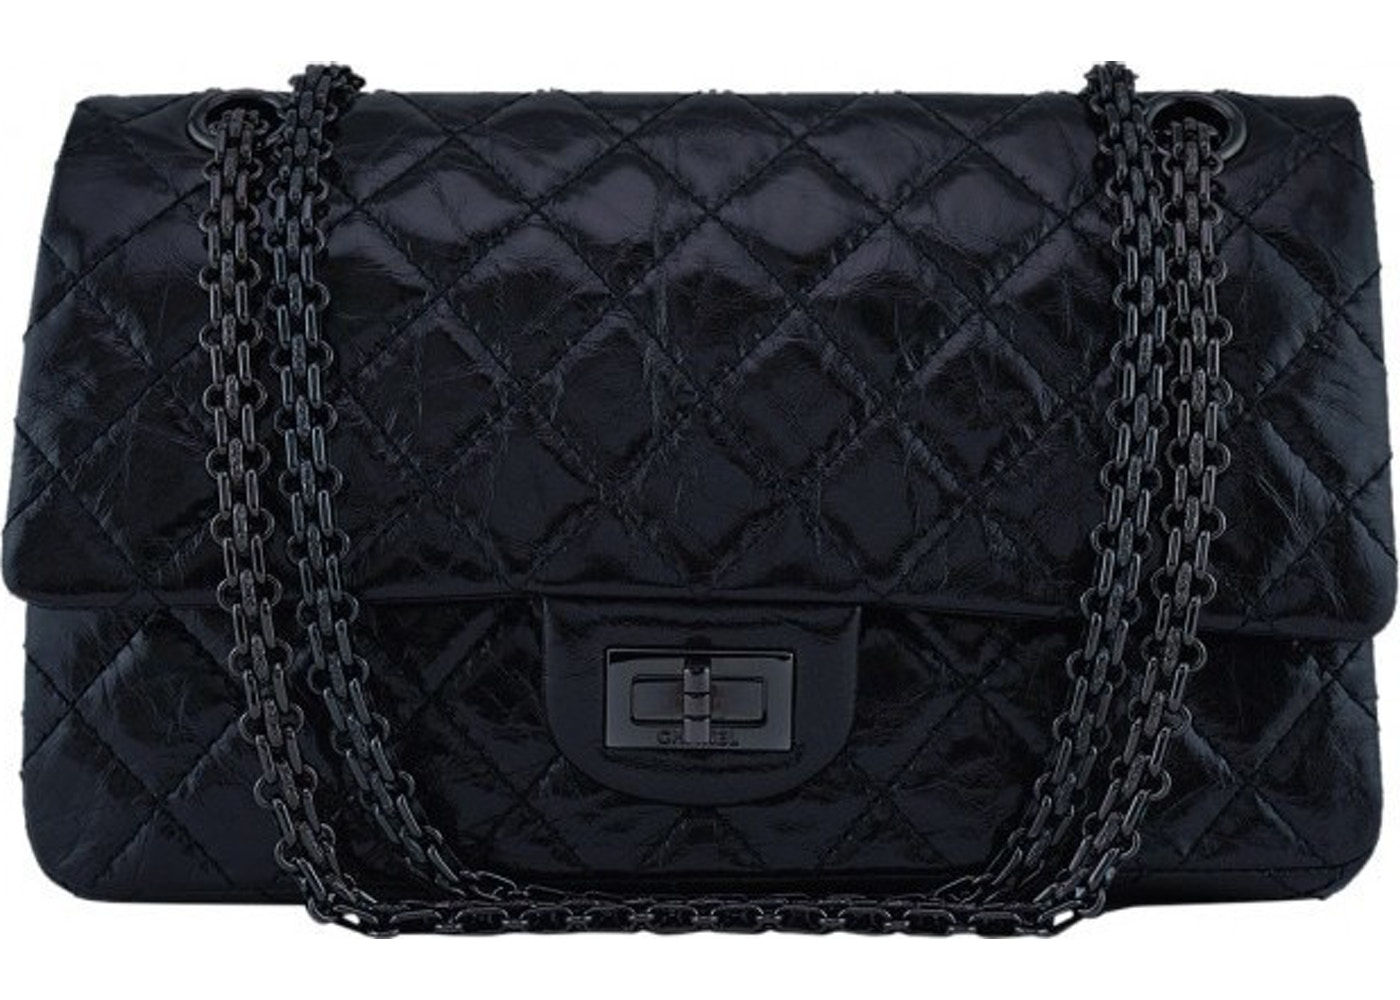 1b7c9ef256bb Chanel Reissue 2.55 Classic Double Flap So Black Quilted Glazed ...